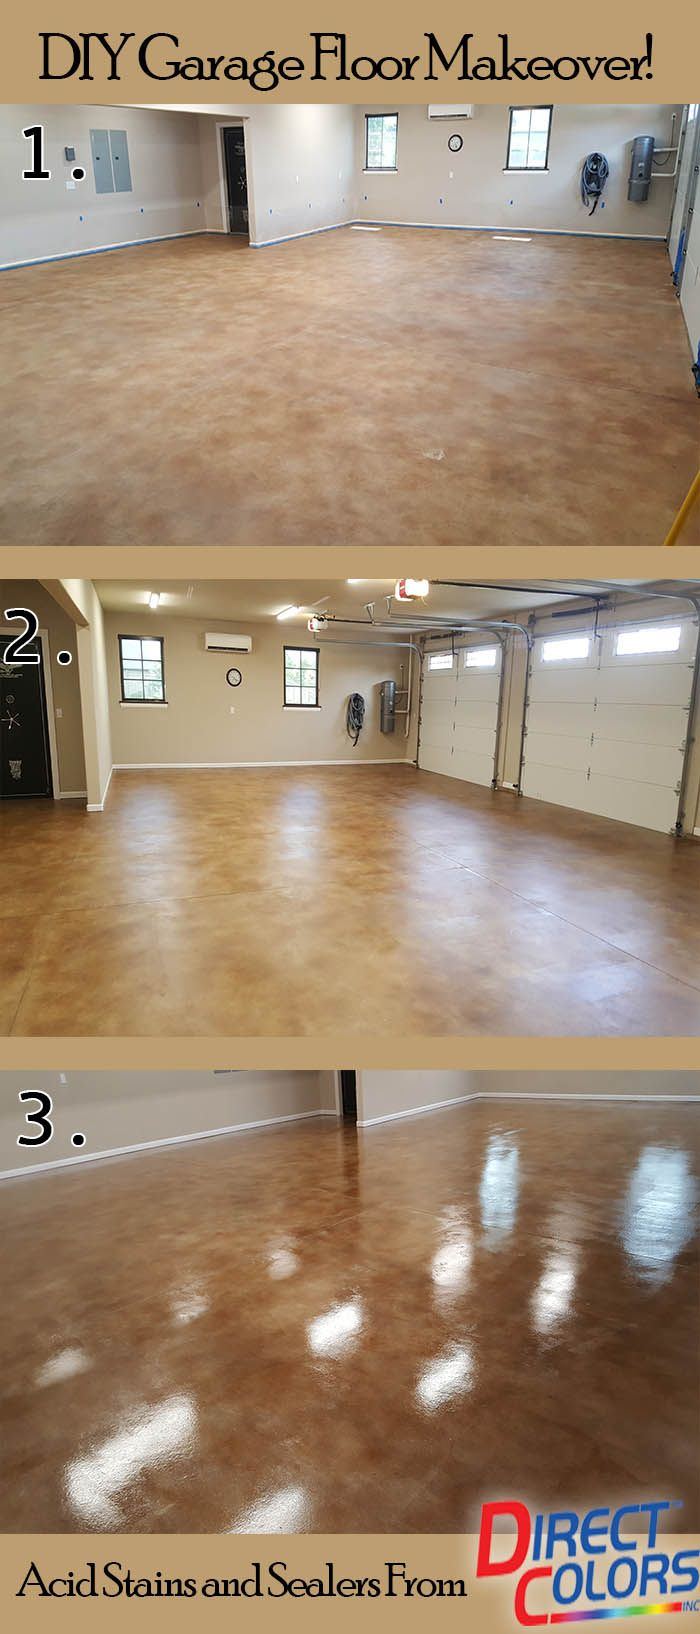 How to: Acid Staining Garage Floors - DirectColors.com